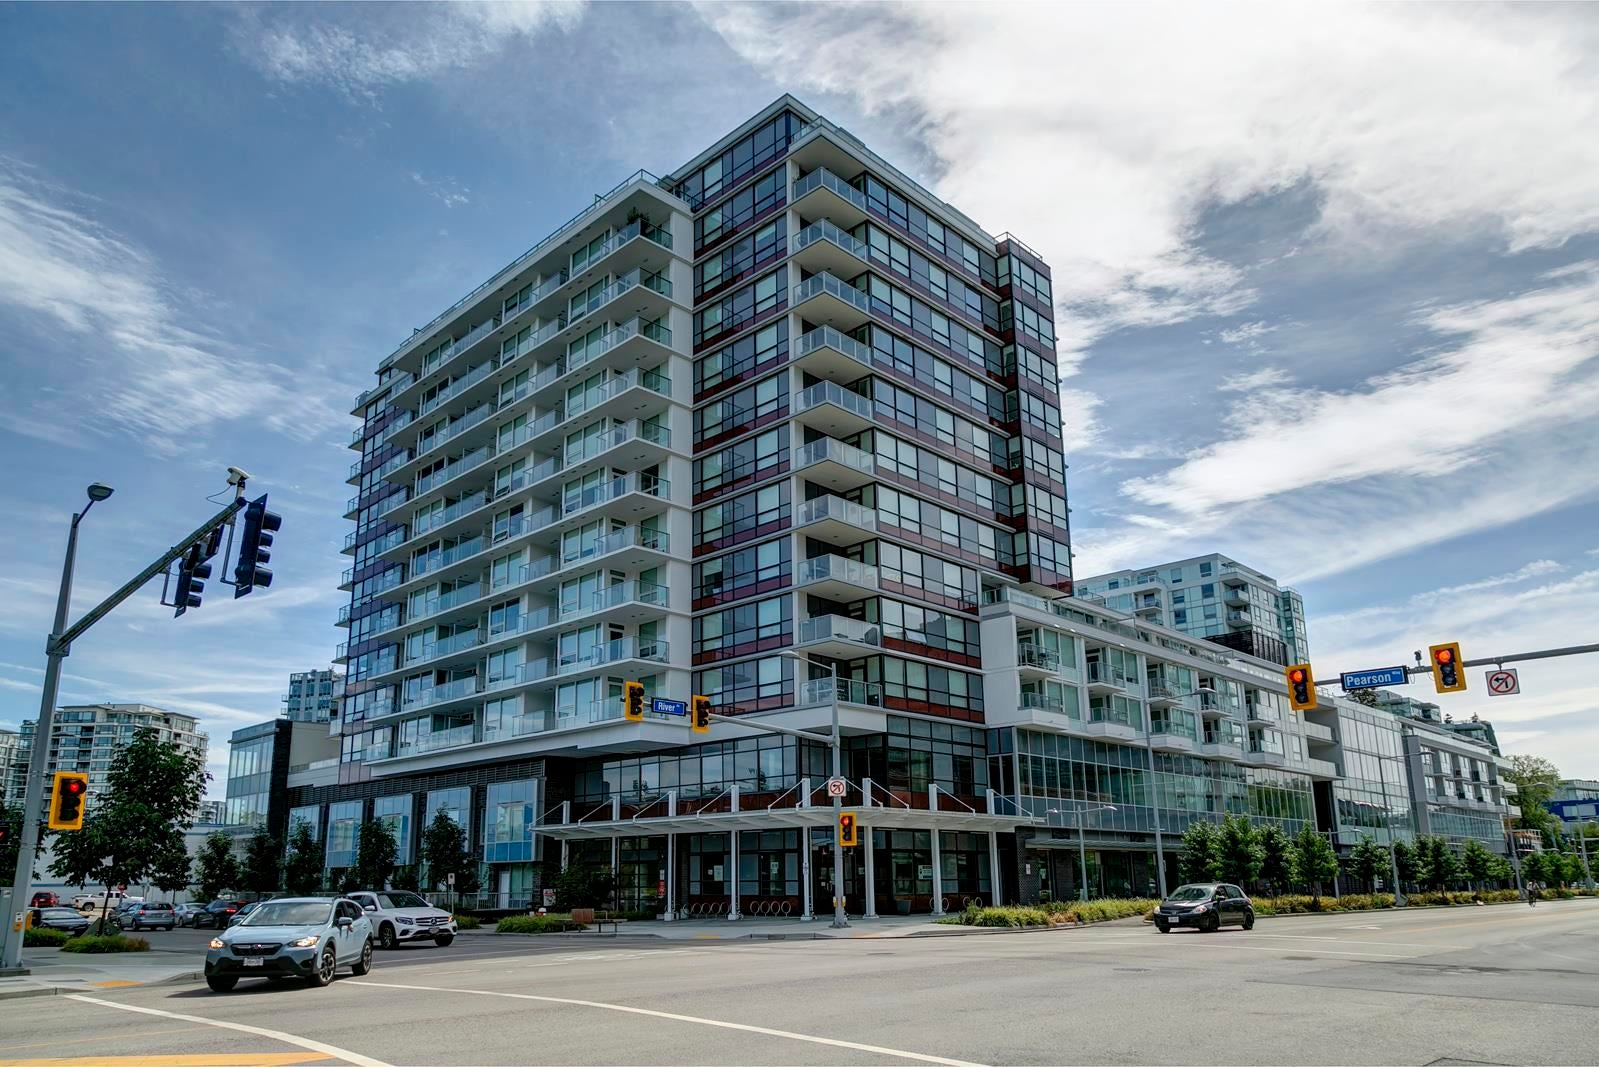 902 6900 PEARSON WAY - Brighouse Apartment/Condo for sale, 2 Bedrooms (R2607040)